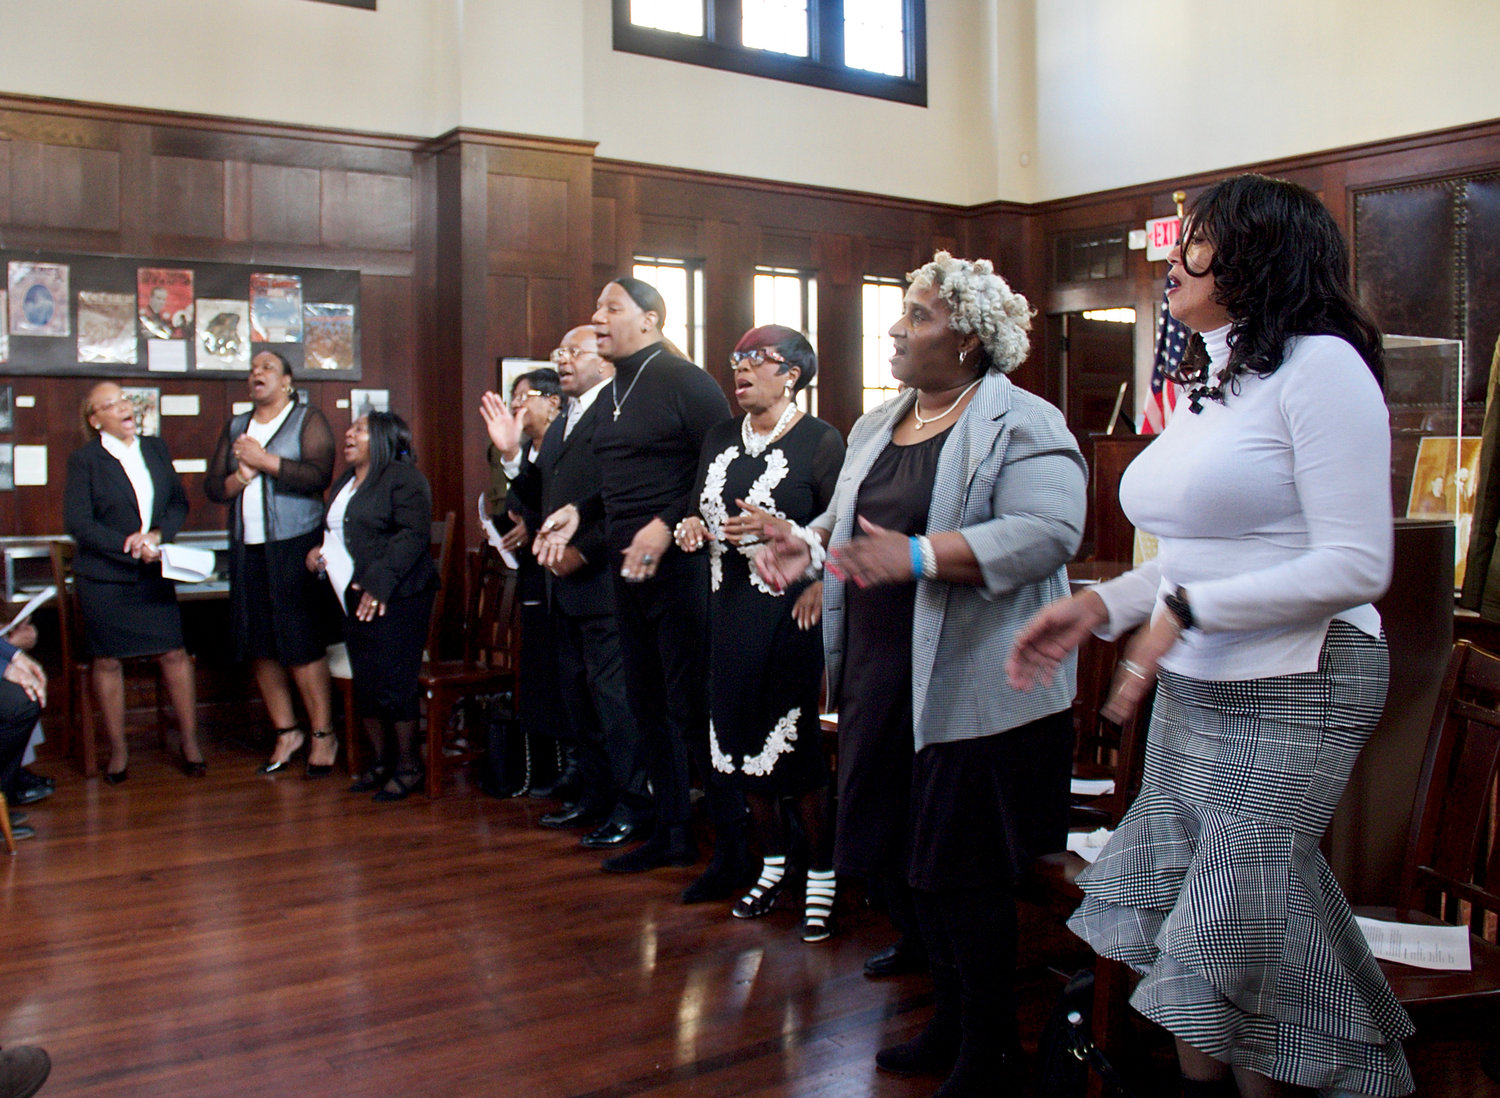 The Adult Choir of the First Baptist Church of Glen Cove treated visitors to the North Shore Historical Museum to a rousing performance of a number of gospel songs to celebrate the start of Black History Month.